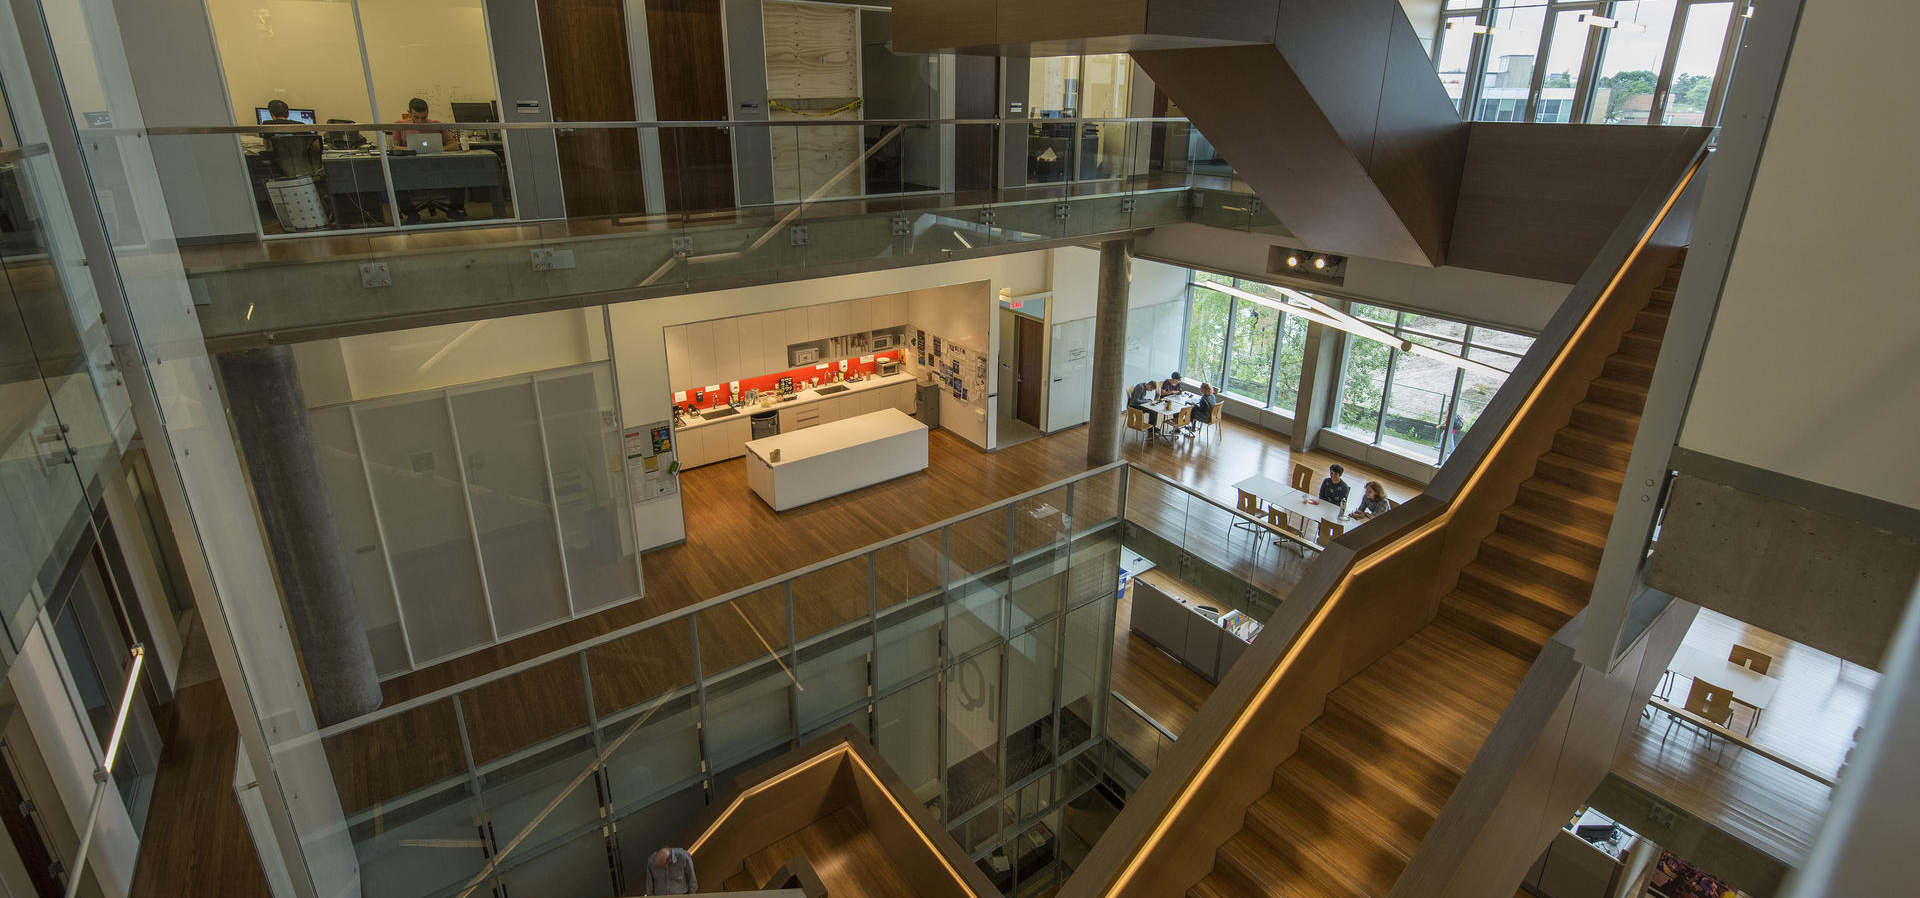 Inside view of the Institute for Quantum Computing building